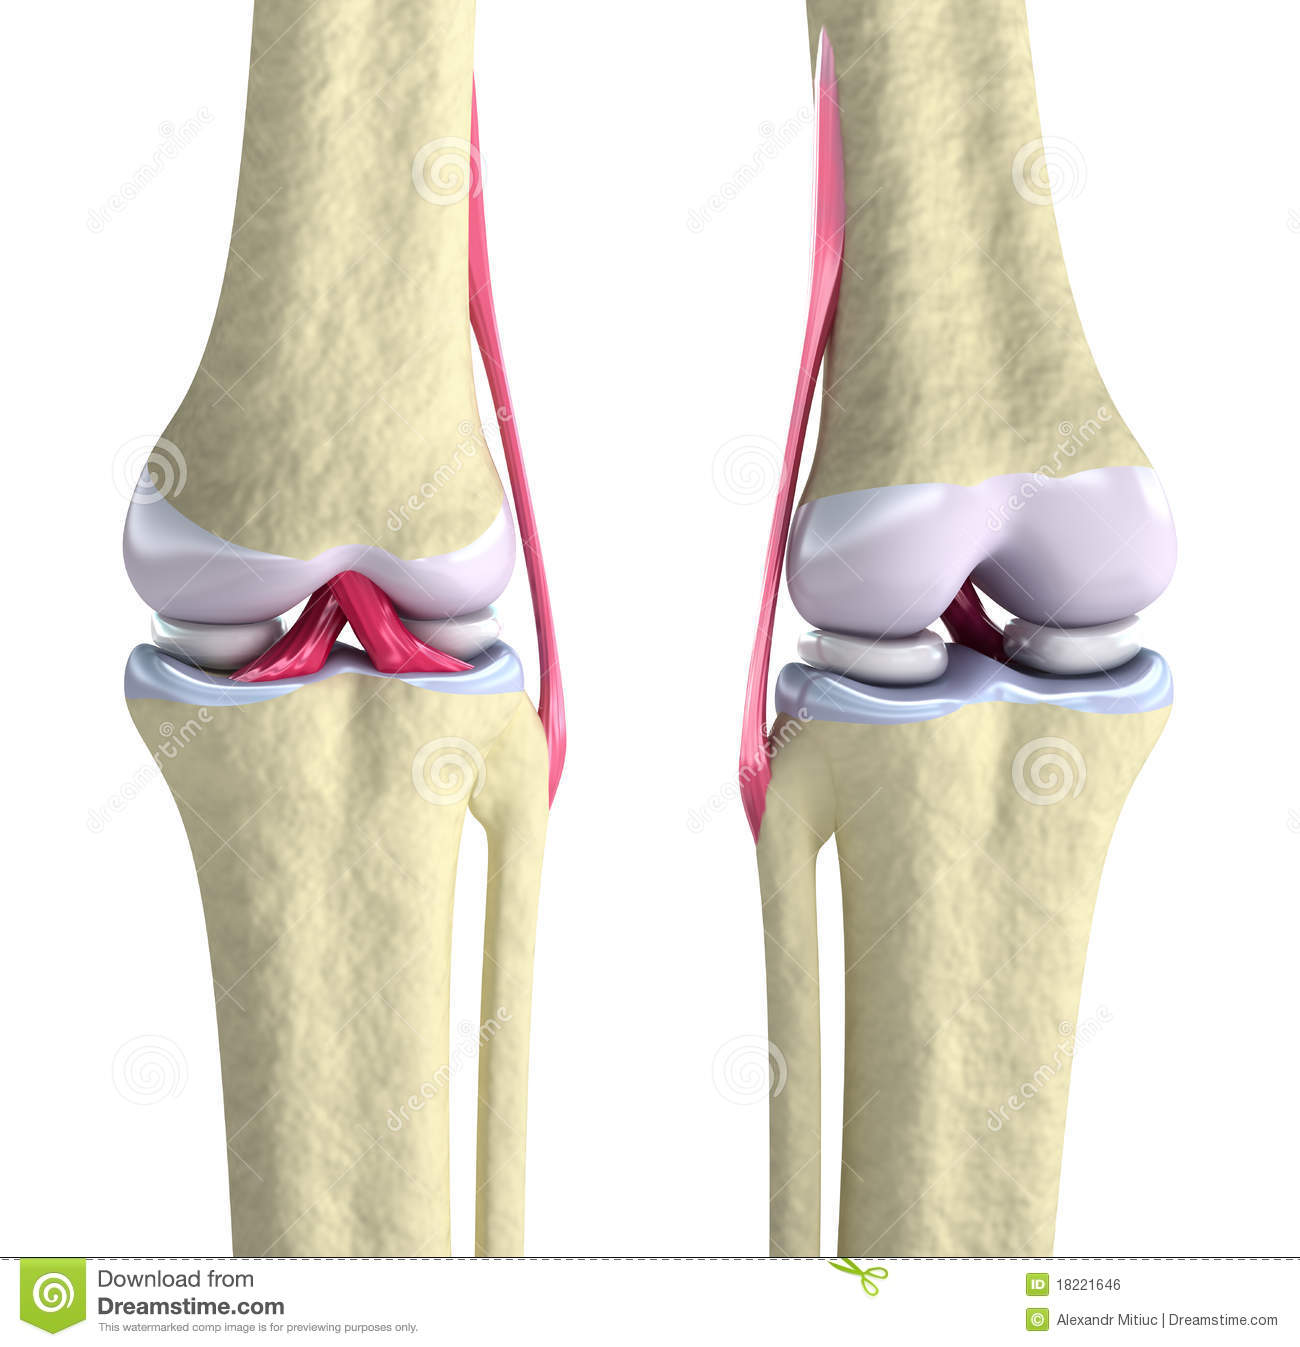 Knee Joint With Ligaments And Cartilages Royalty Free Stock Image.